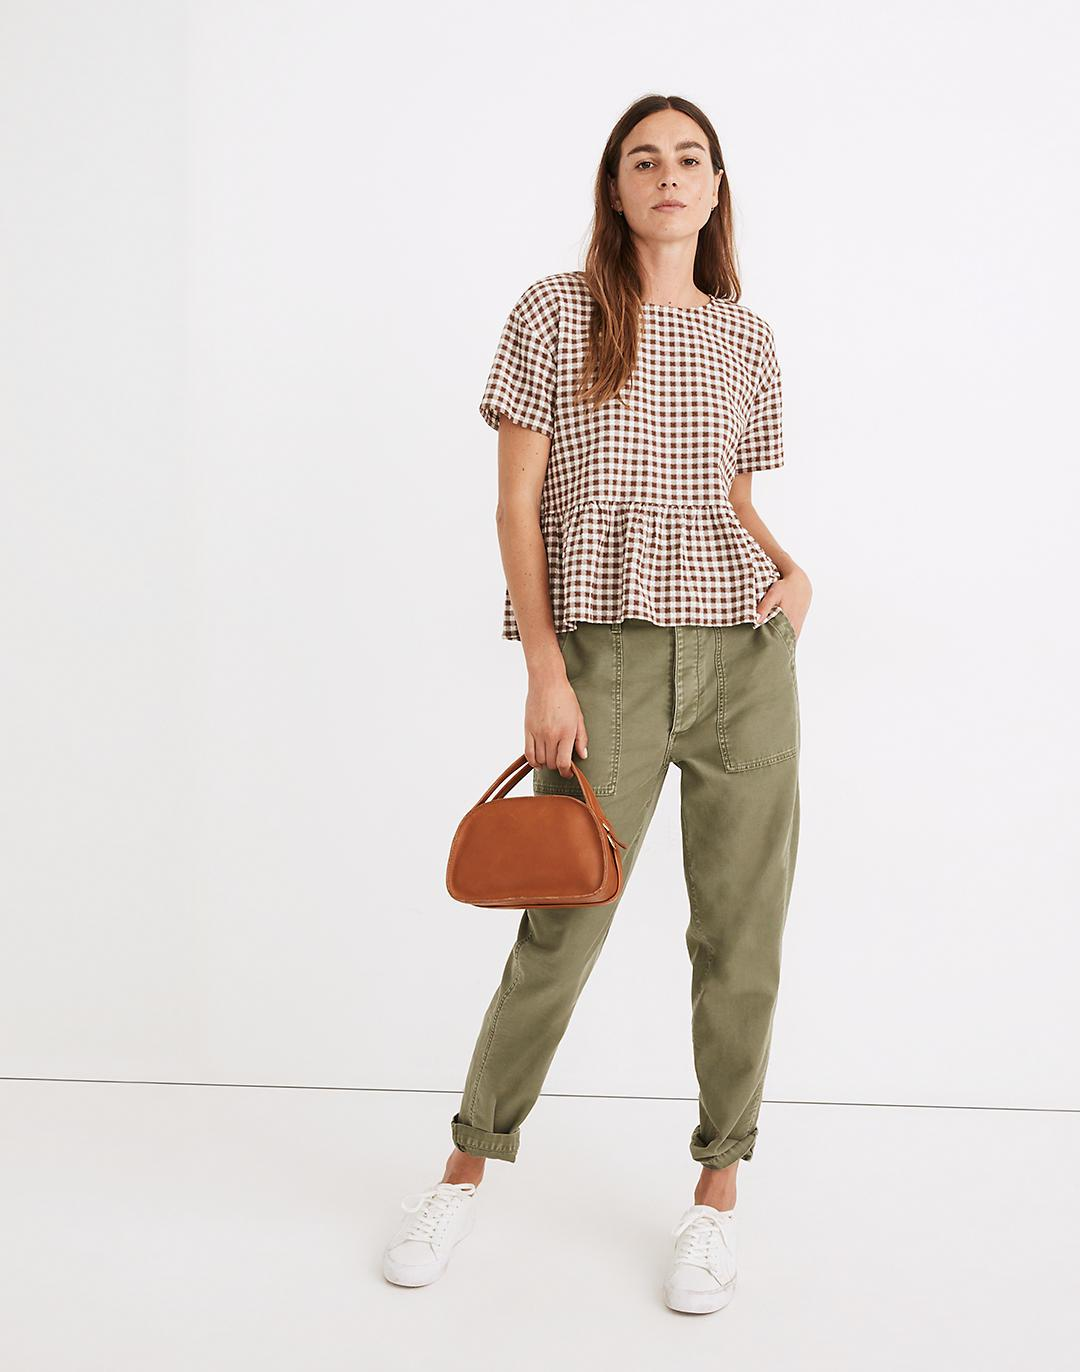 Medford Top in Textured Gingham